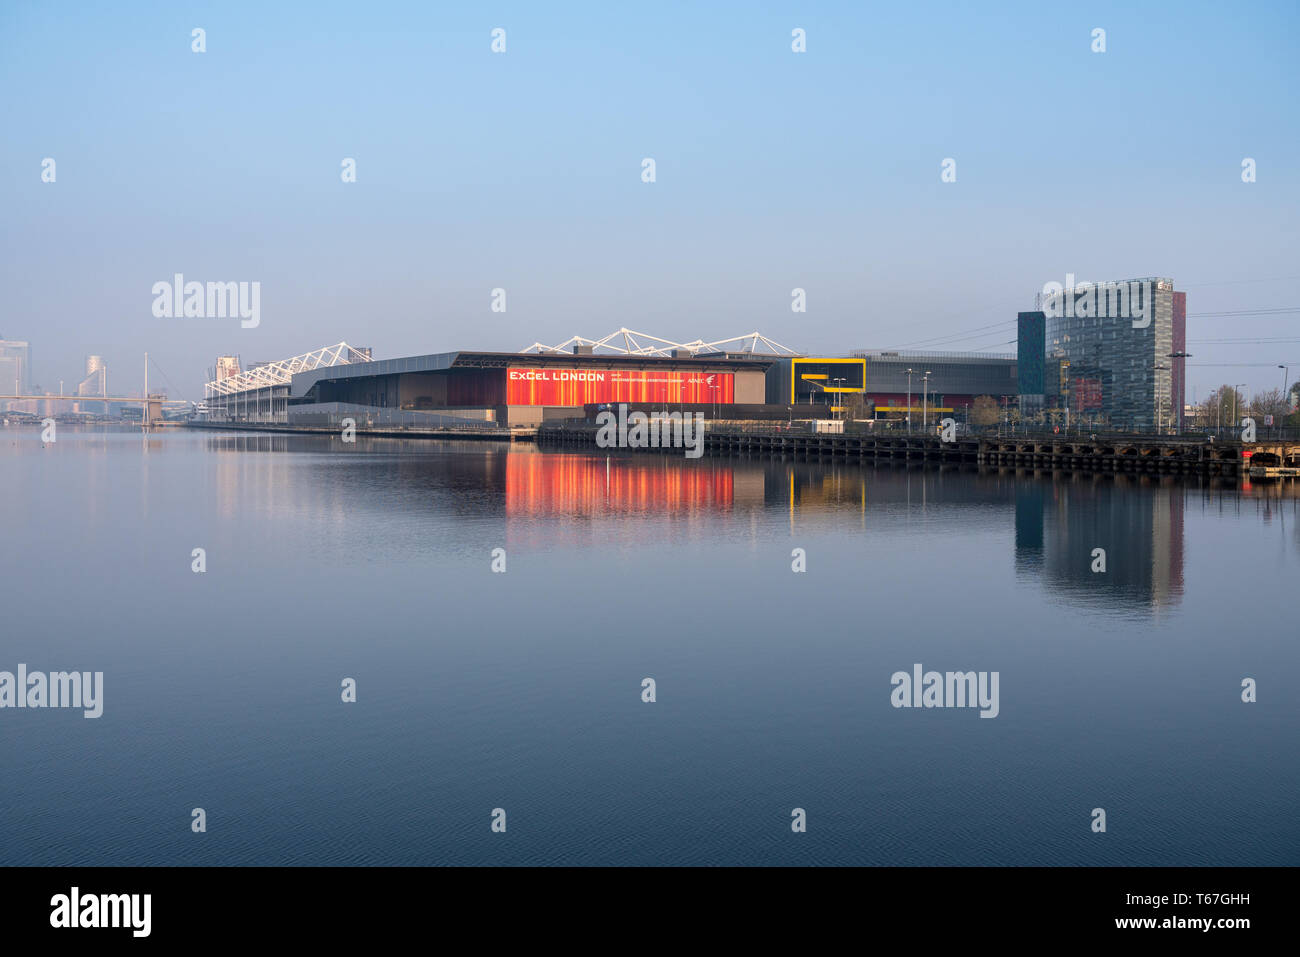 D Exhibition Docklands : Excel conference center in london docklands at sunrise stock photo